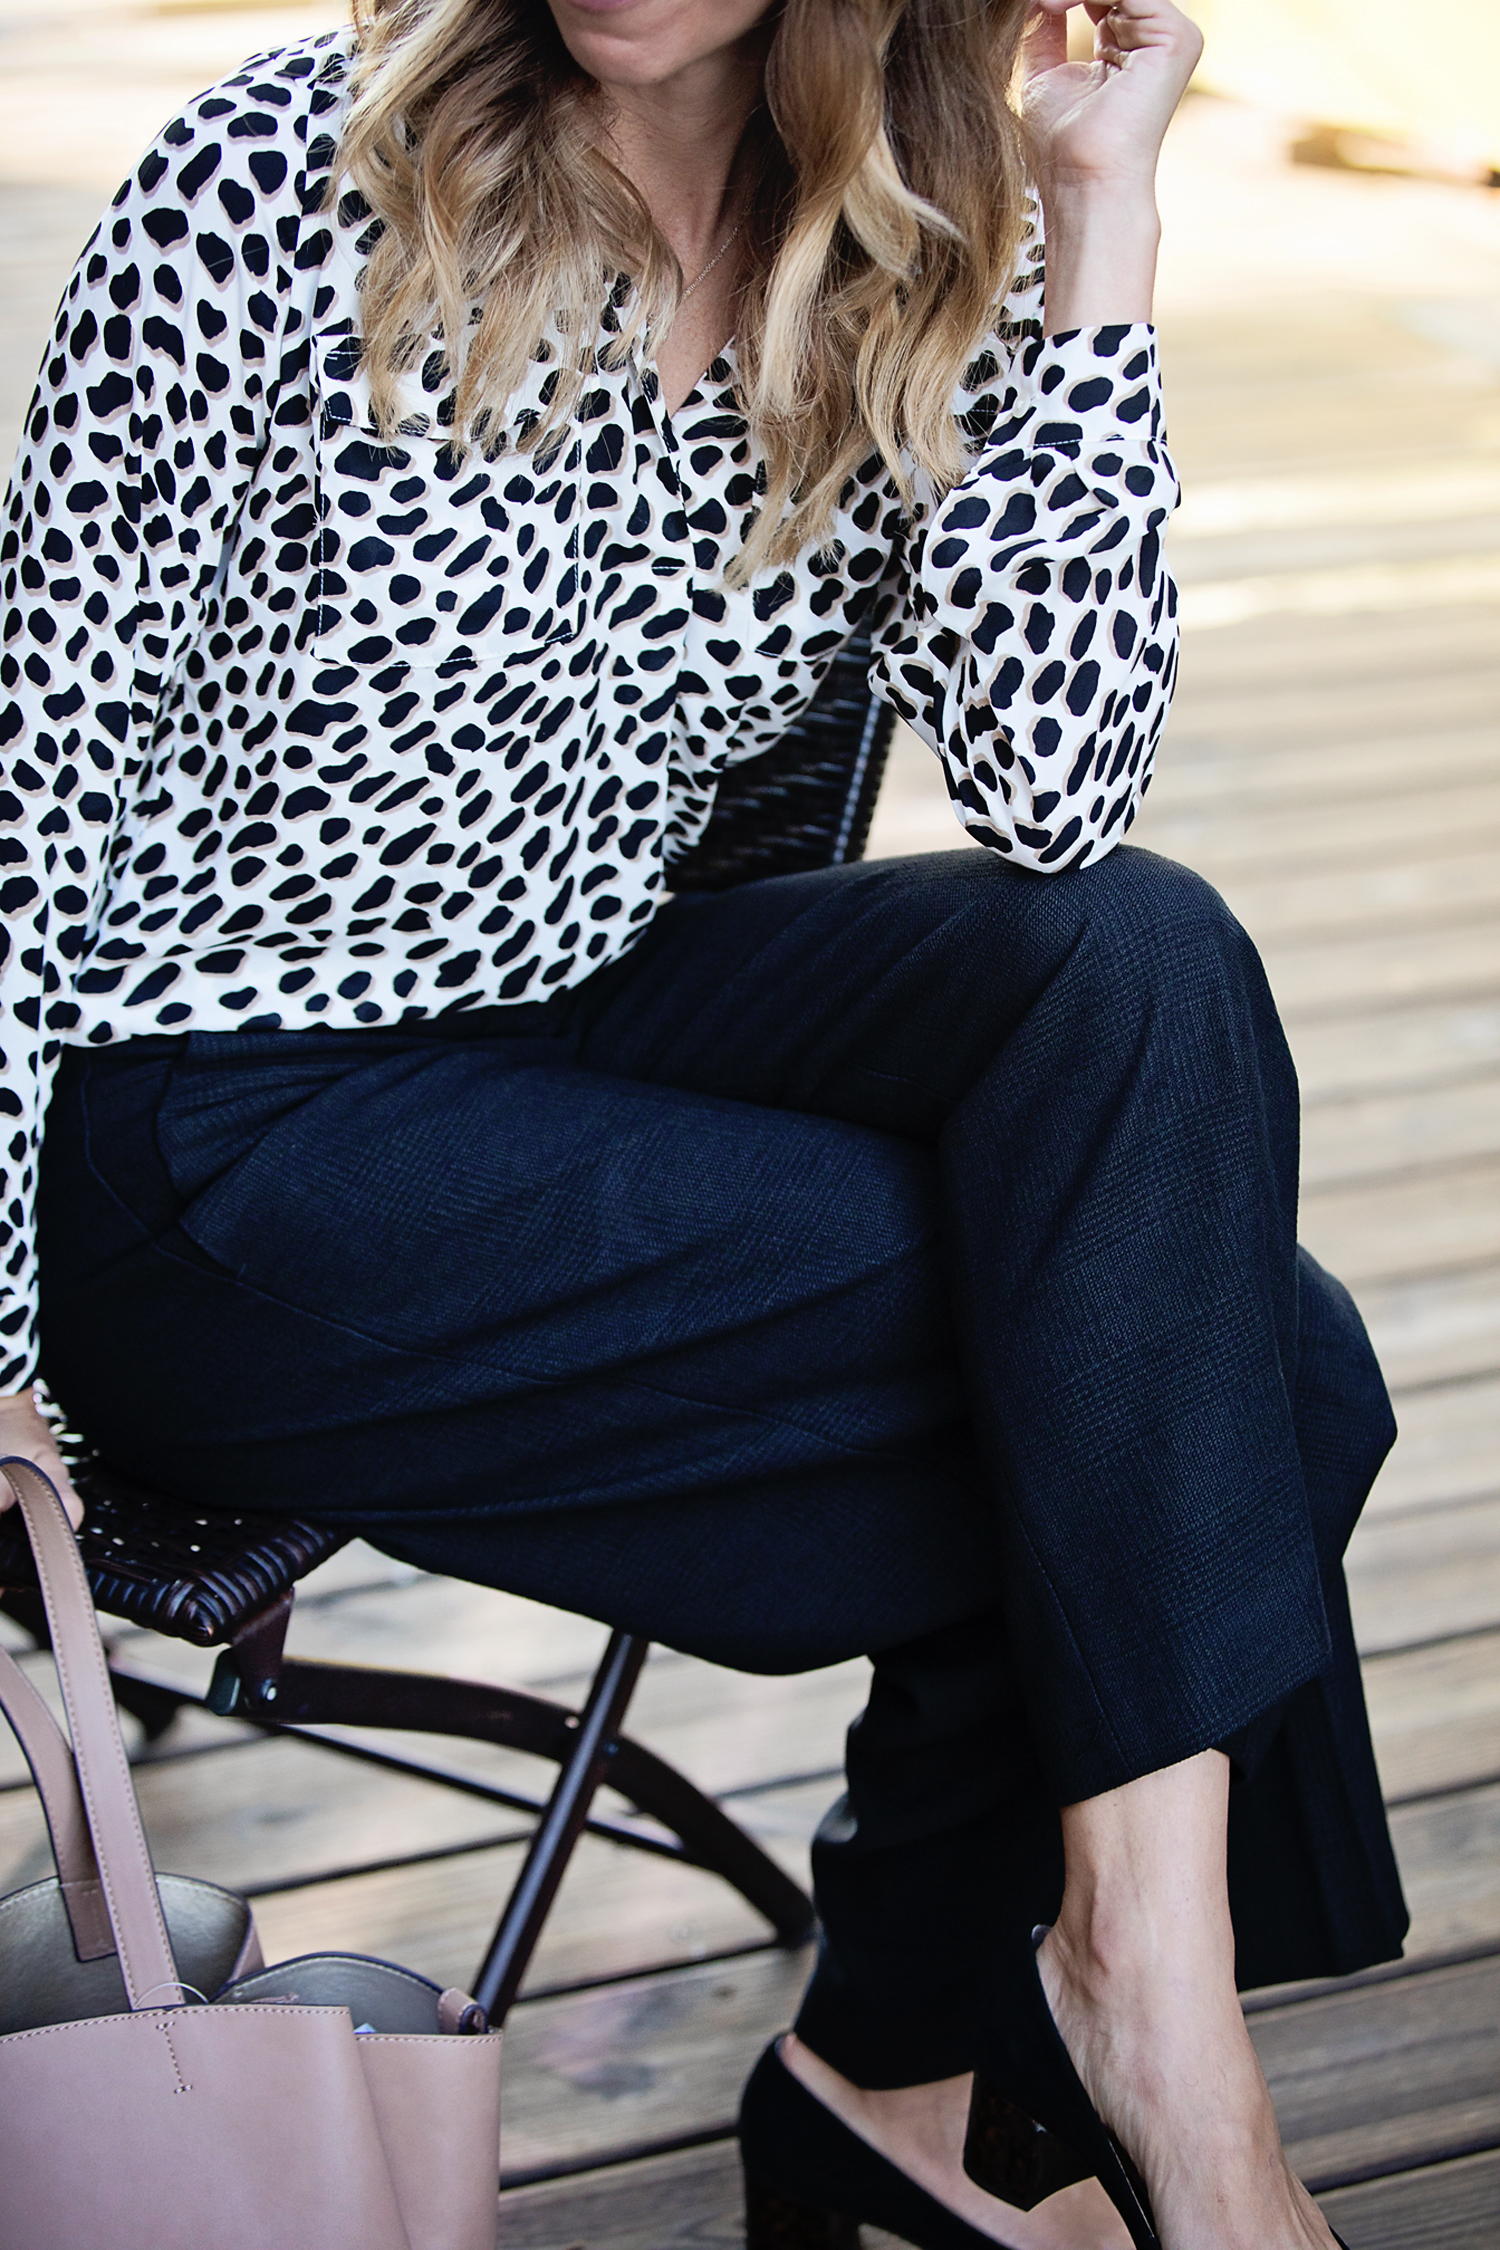 The motherchic wearing ann taylor animal print top and wide leg pants